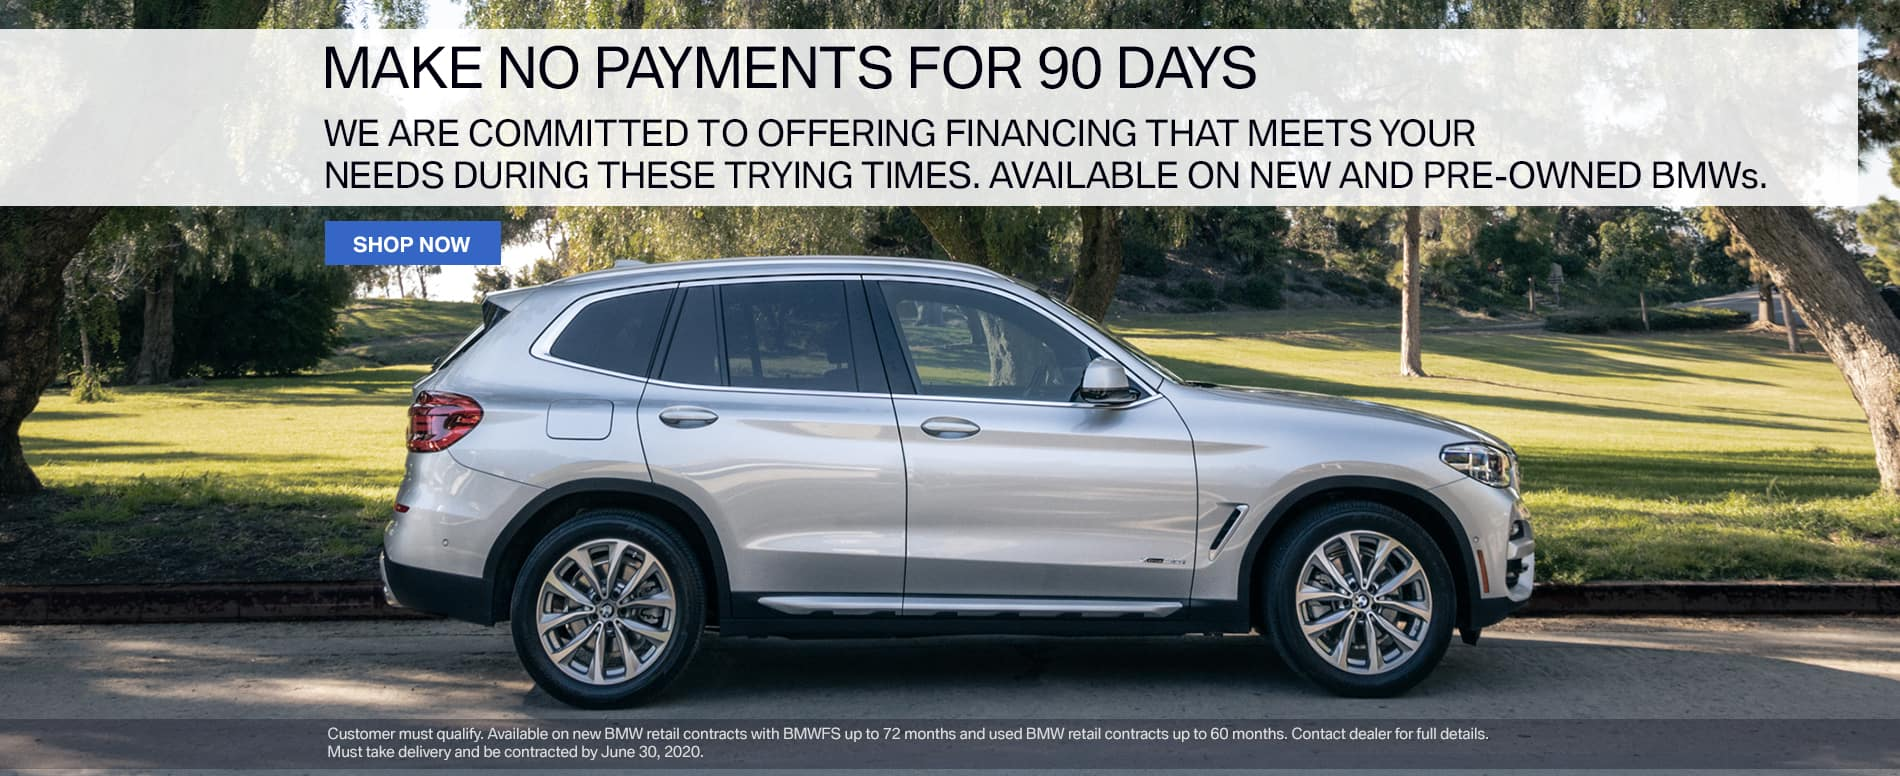 Circle BMW No Payments 90 Days